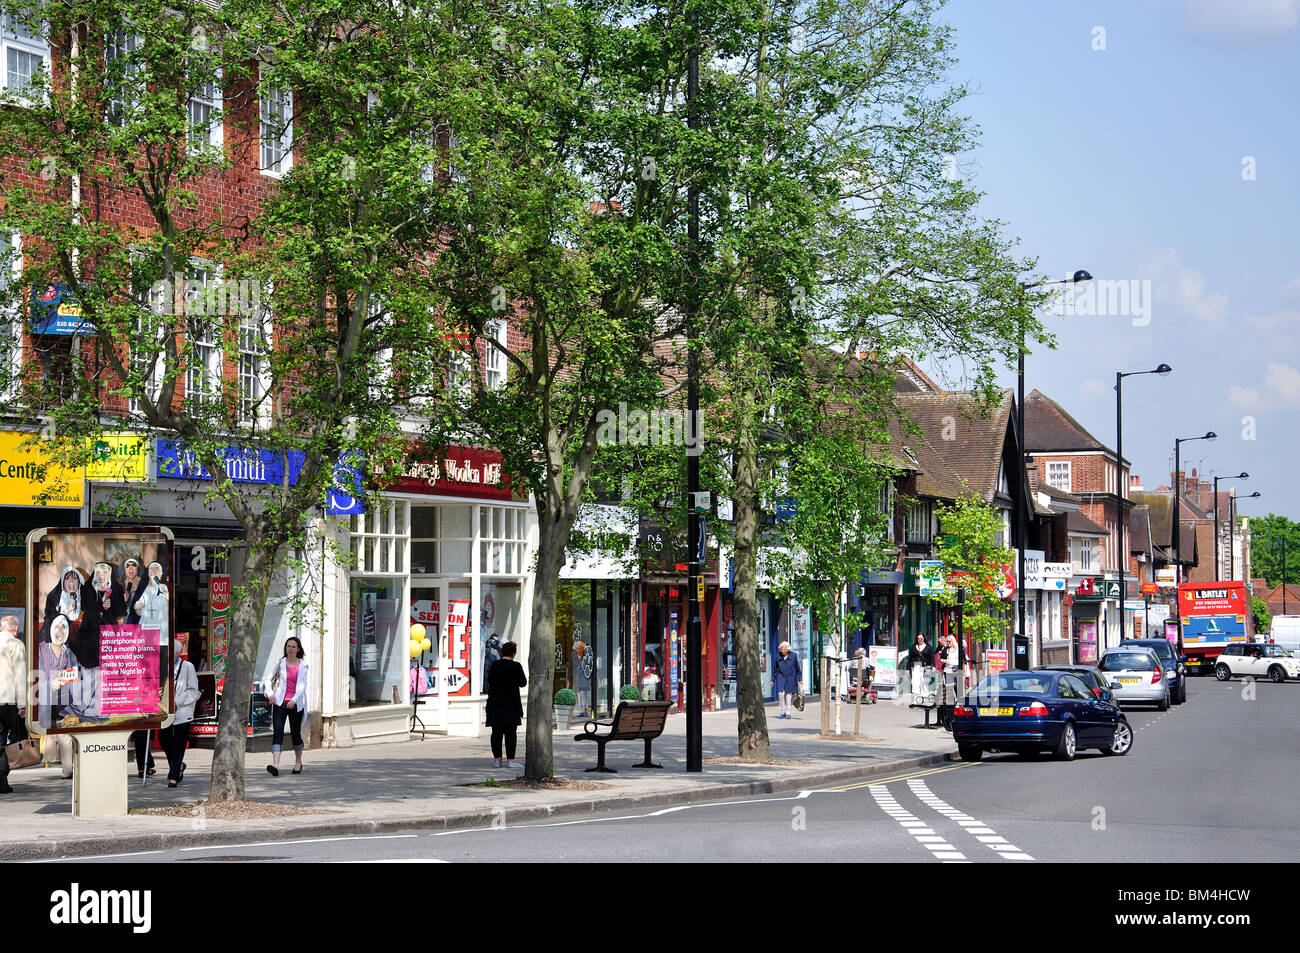 High Street  Ruislip  London Borough of Hillingdon  Greater London   England  United Kingdom. High Street  Ruislip  London Borough Of Hillingdon  Greater London